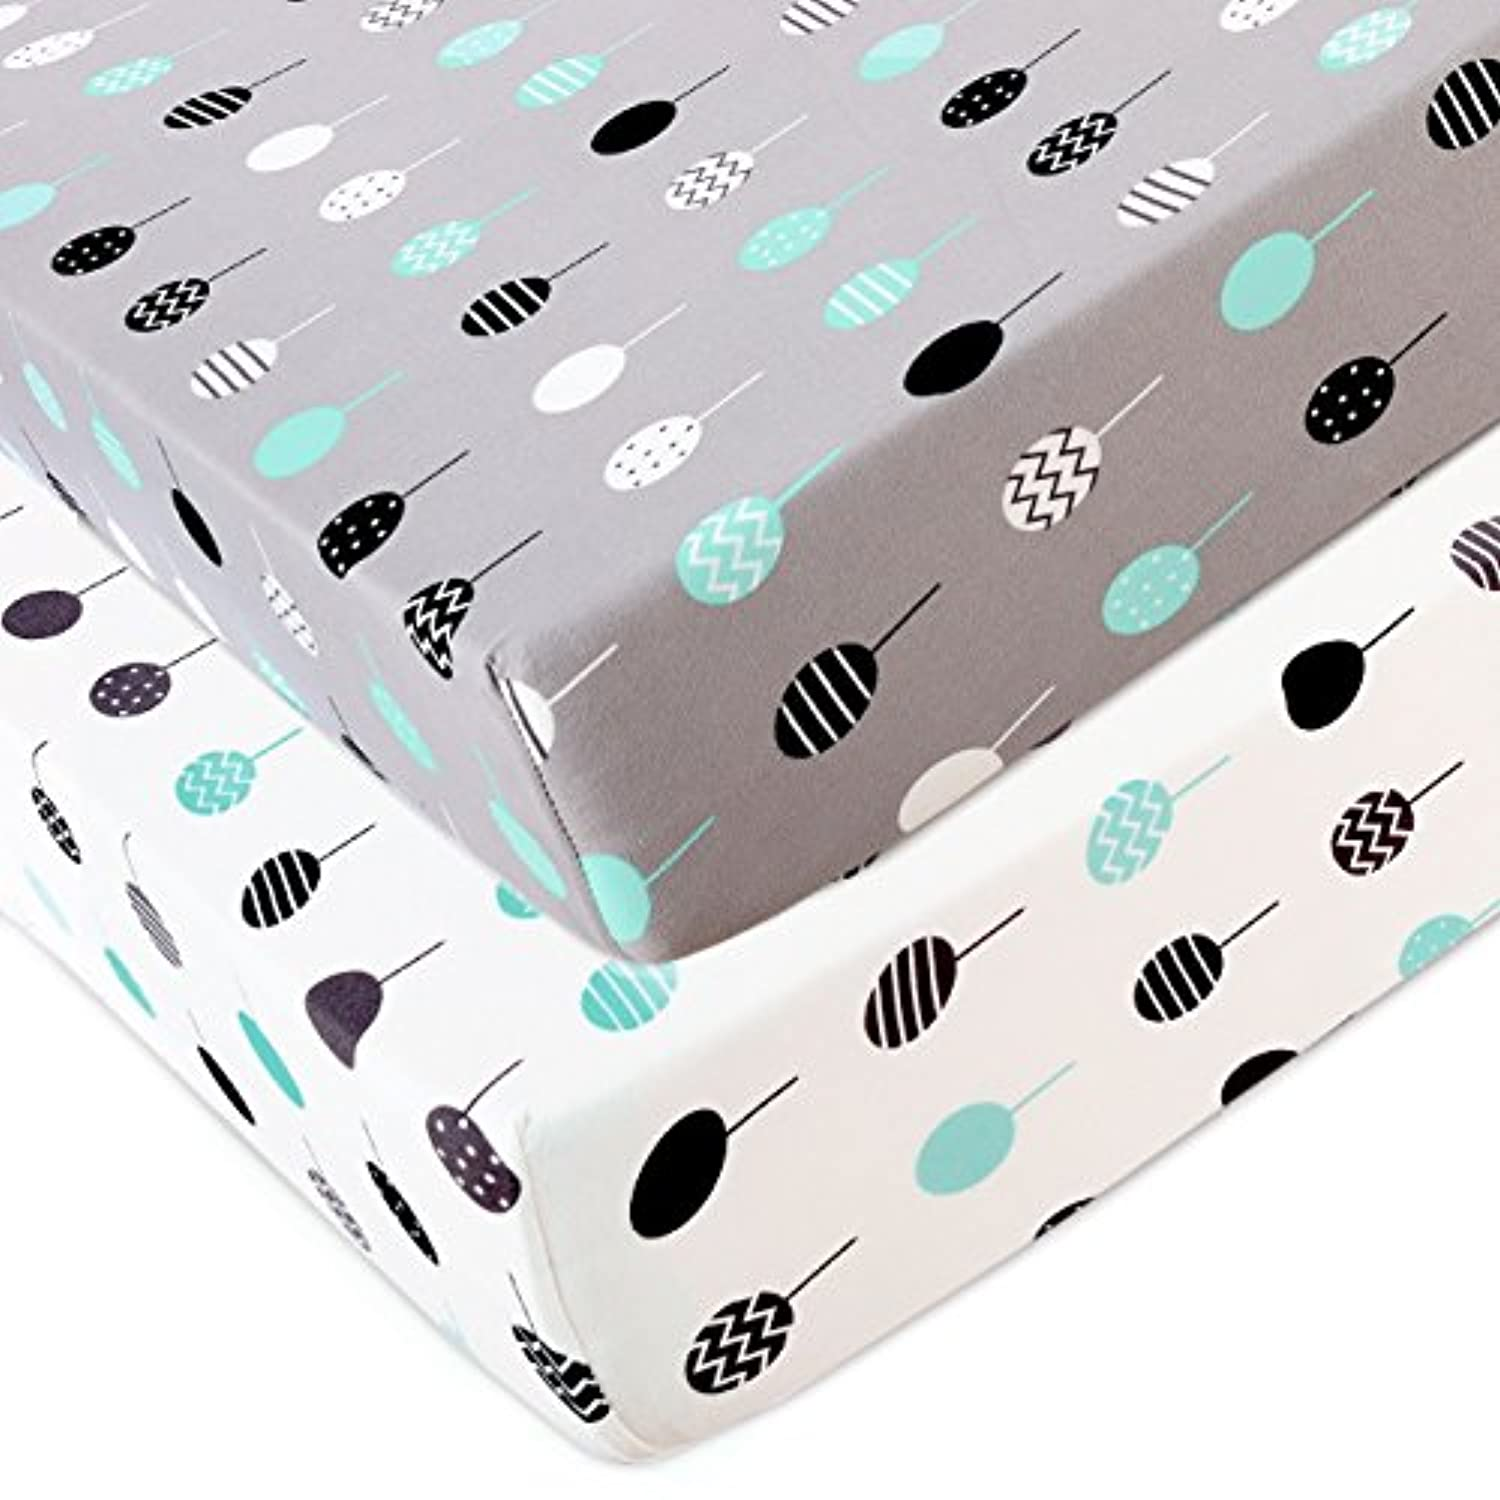 Stretchy Changing Pad covers-brolex 2パックジャージーニット変更パッドCovers For Girls Boys crib sheet グレー